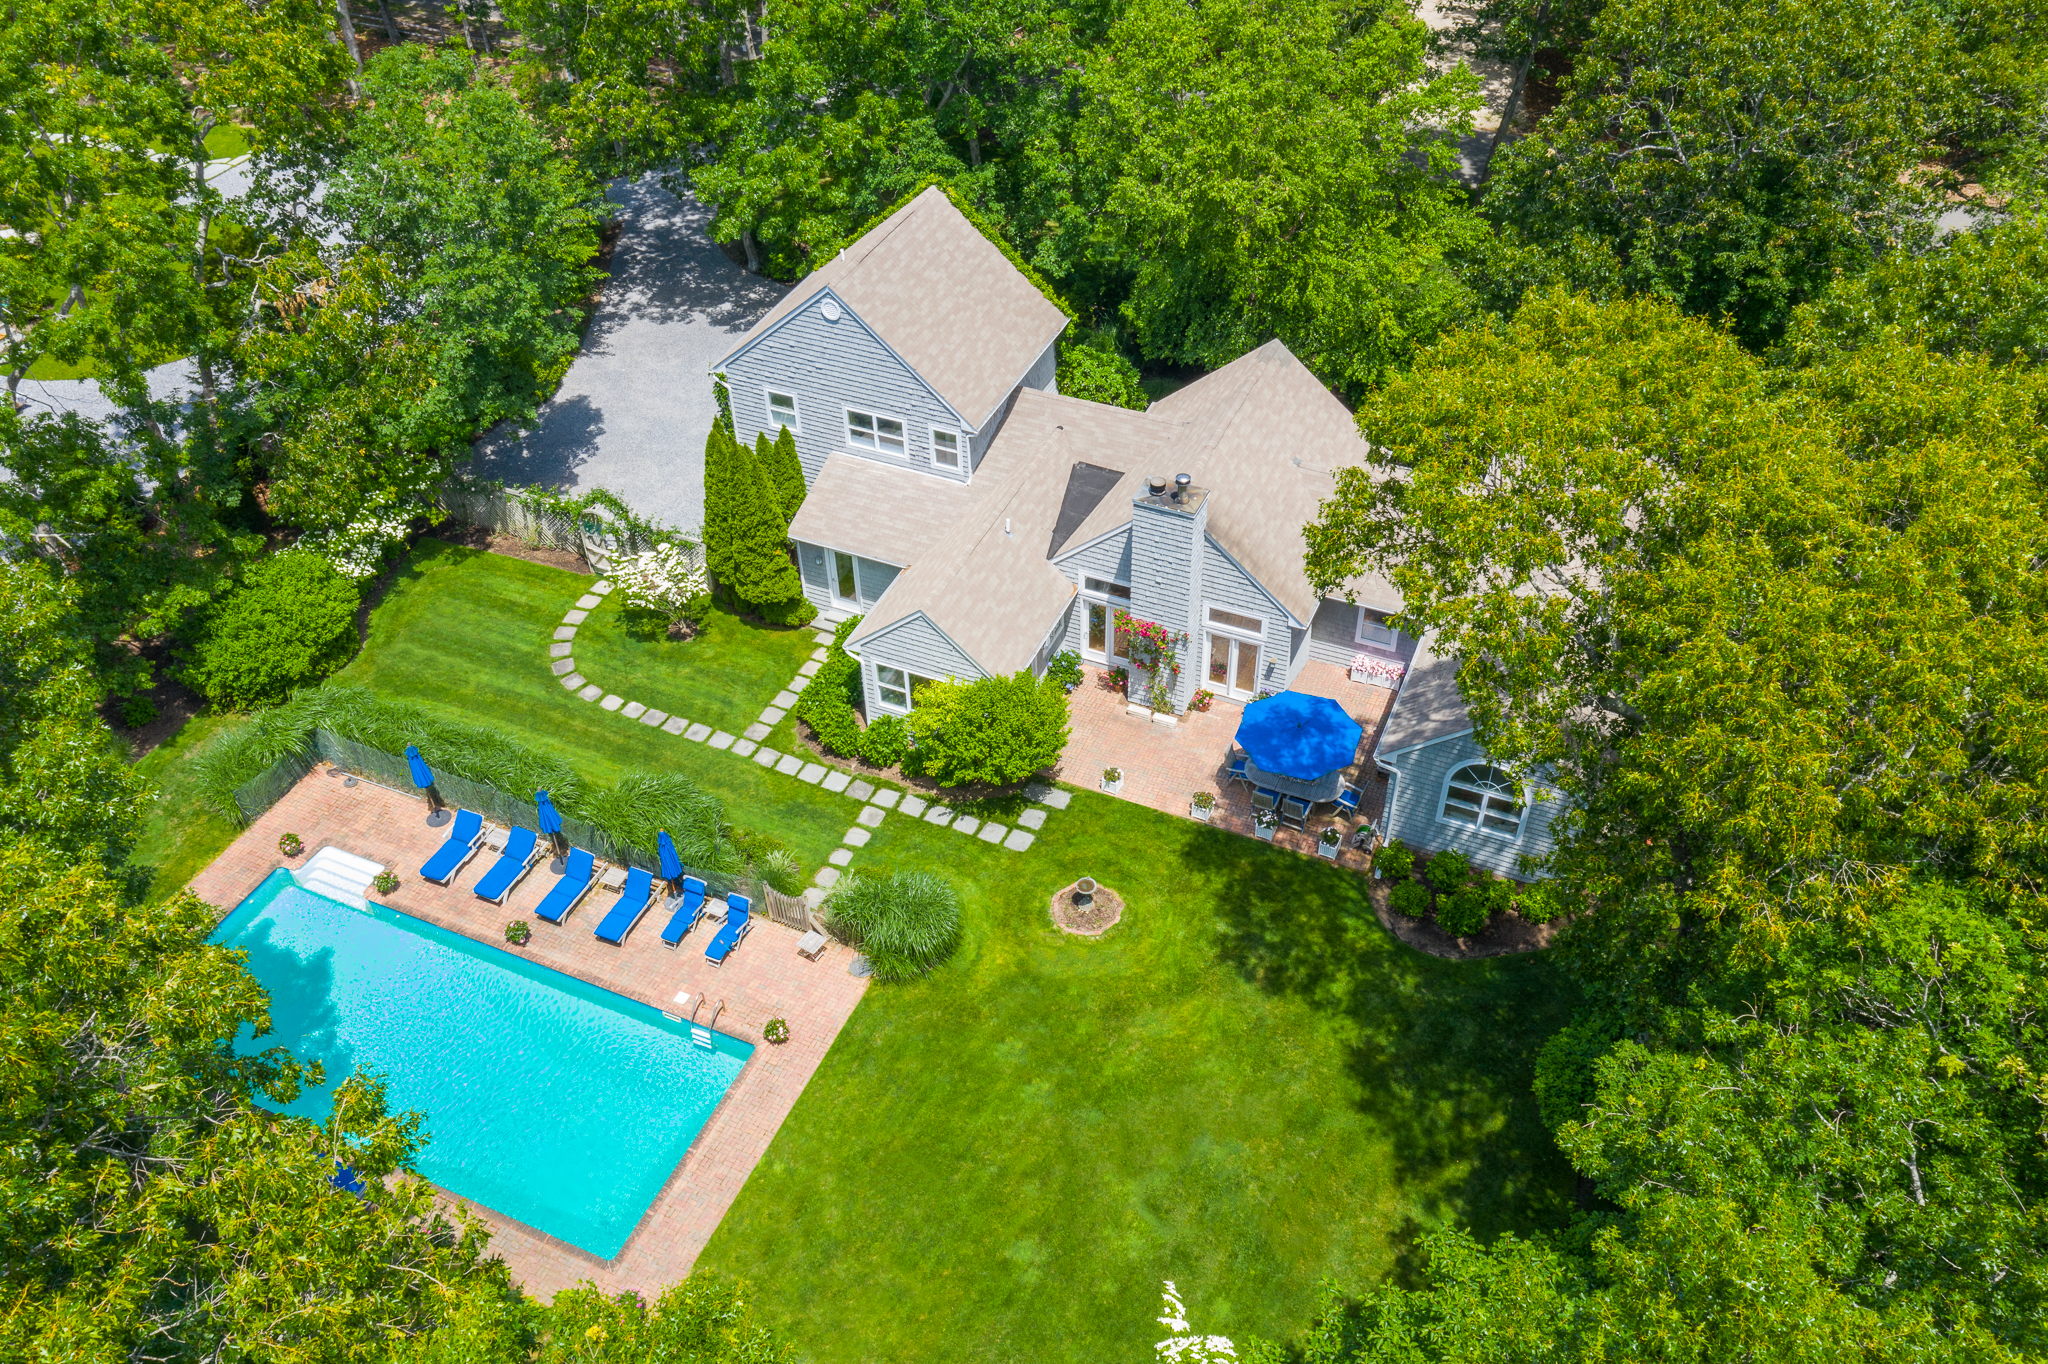 42 Briarcroft Dr - East Hampton Springs, New York